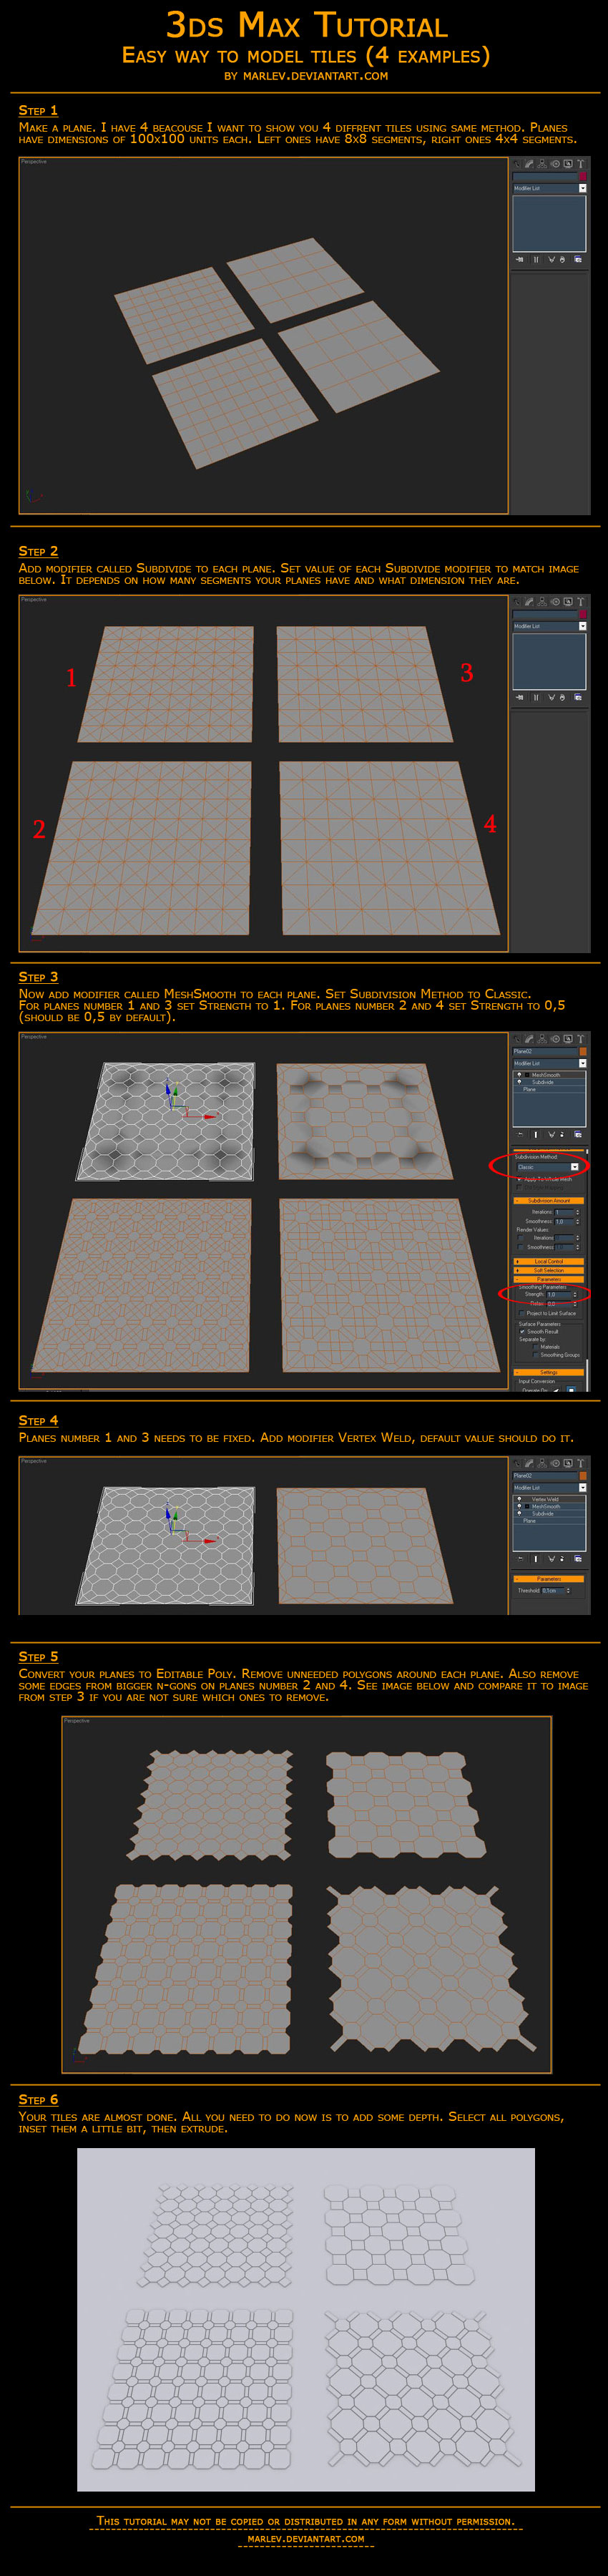 Making of tiles in 3ds Max by marlev